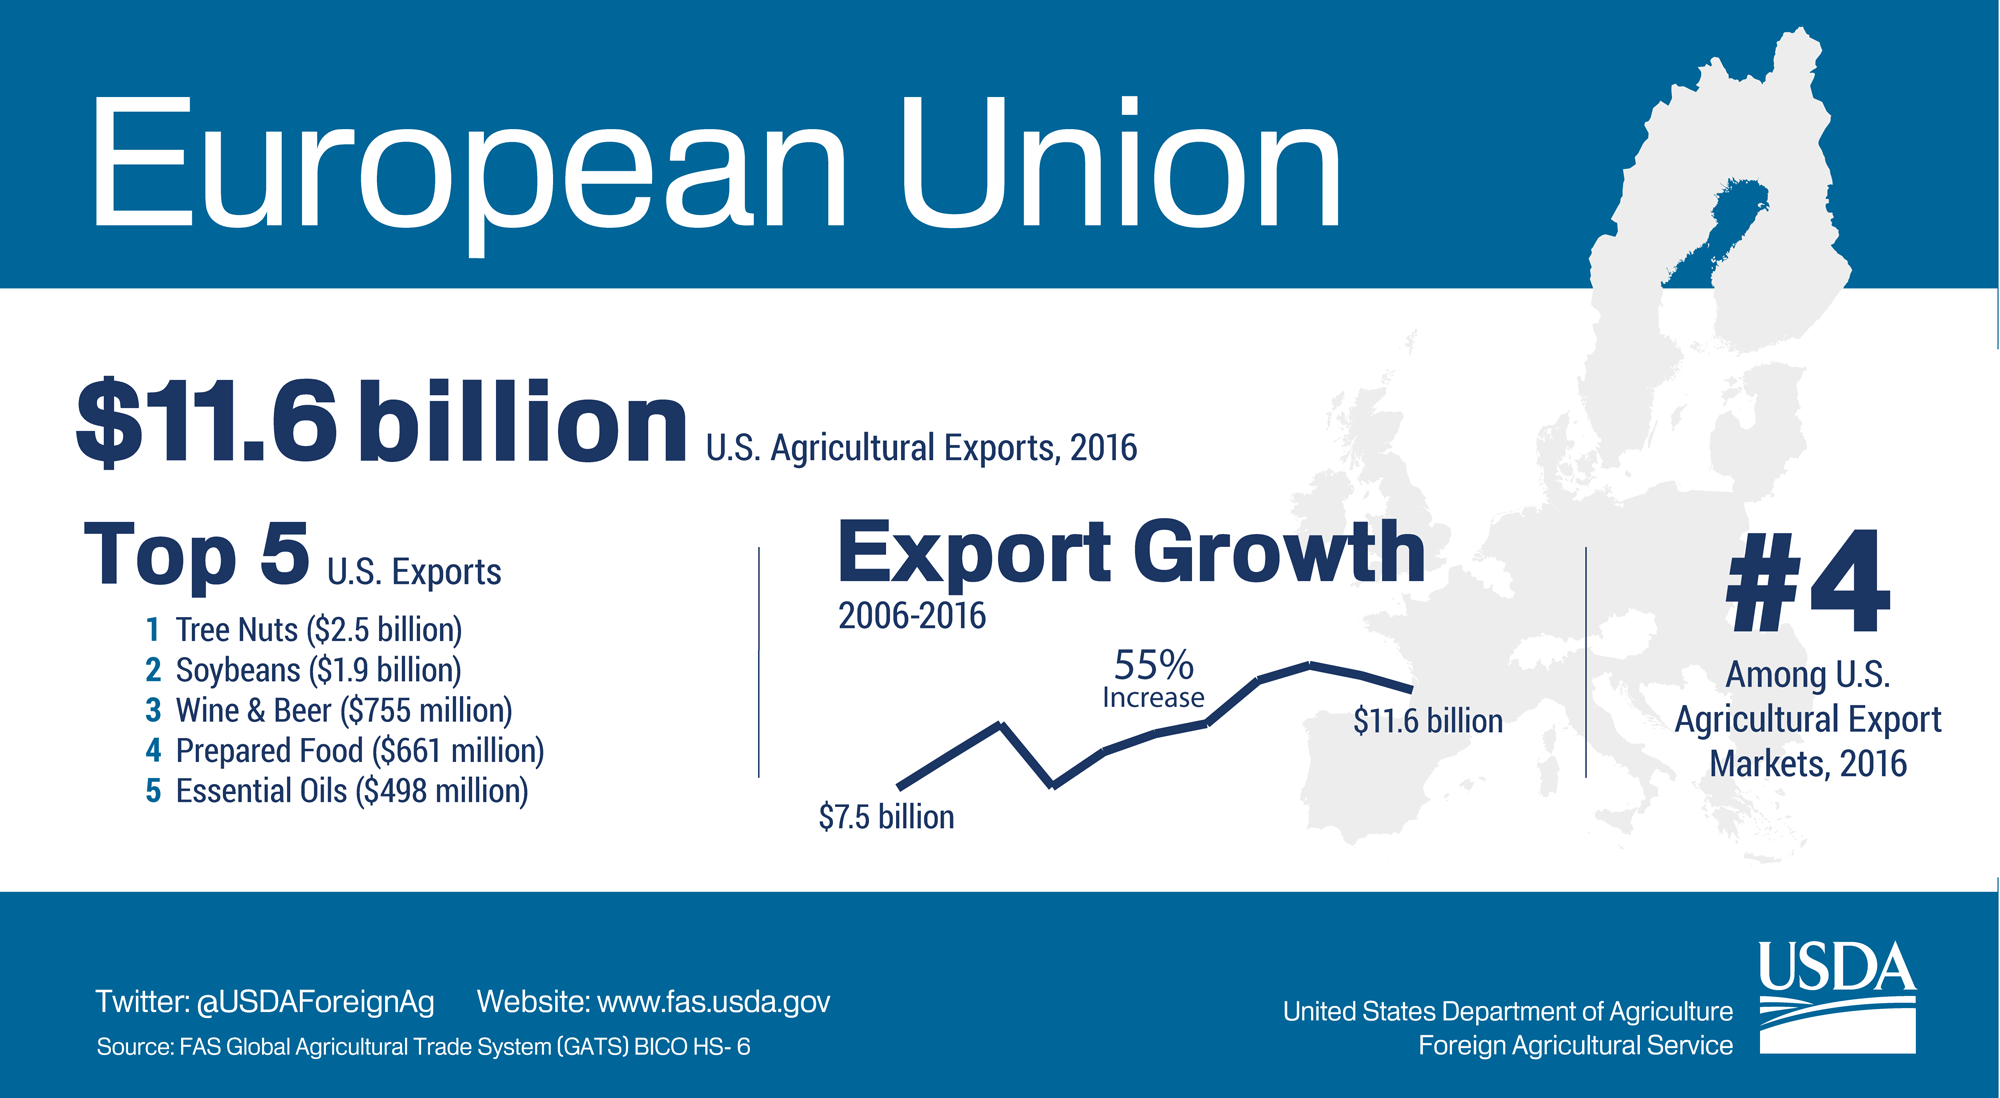 Infographic showing highlights of U.S. agricultural exports to European Union. The U.S. exported $11.6 billion in agriculture to European Union in 2016.